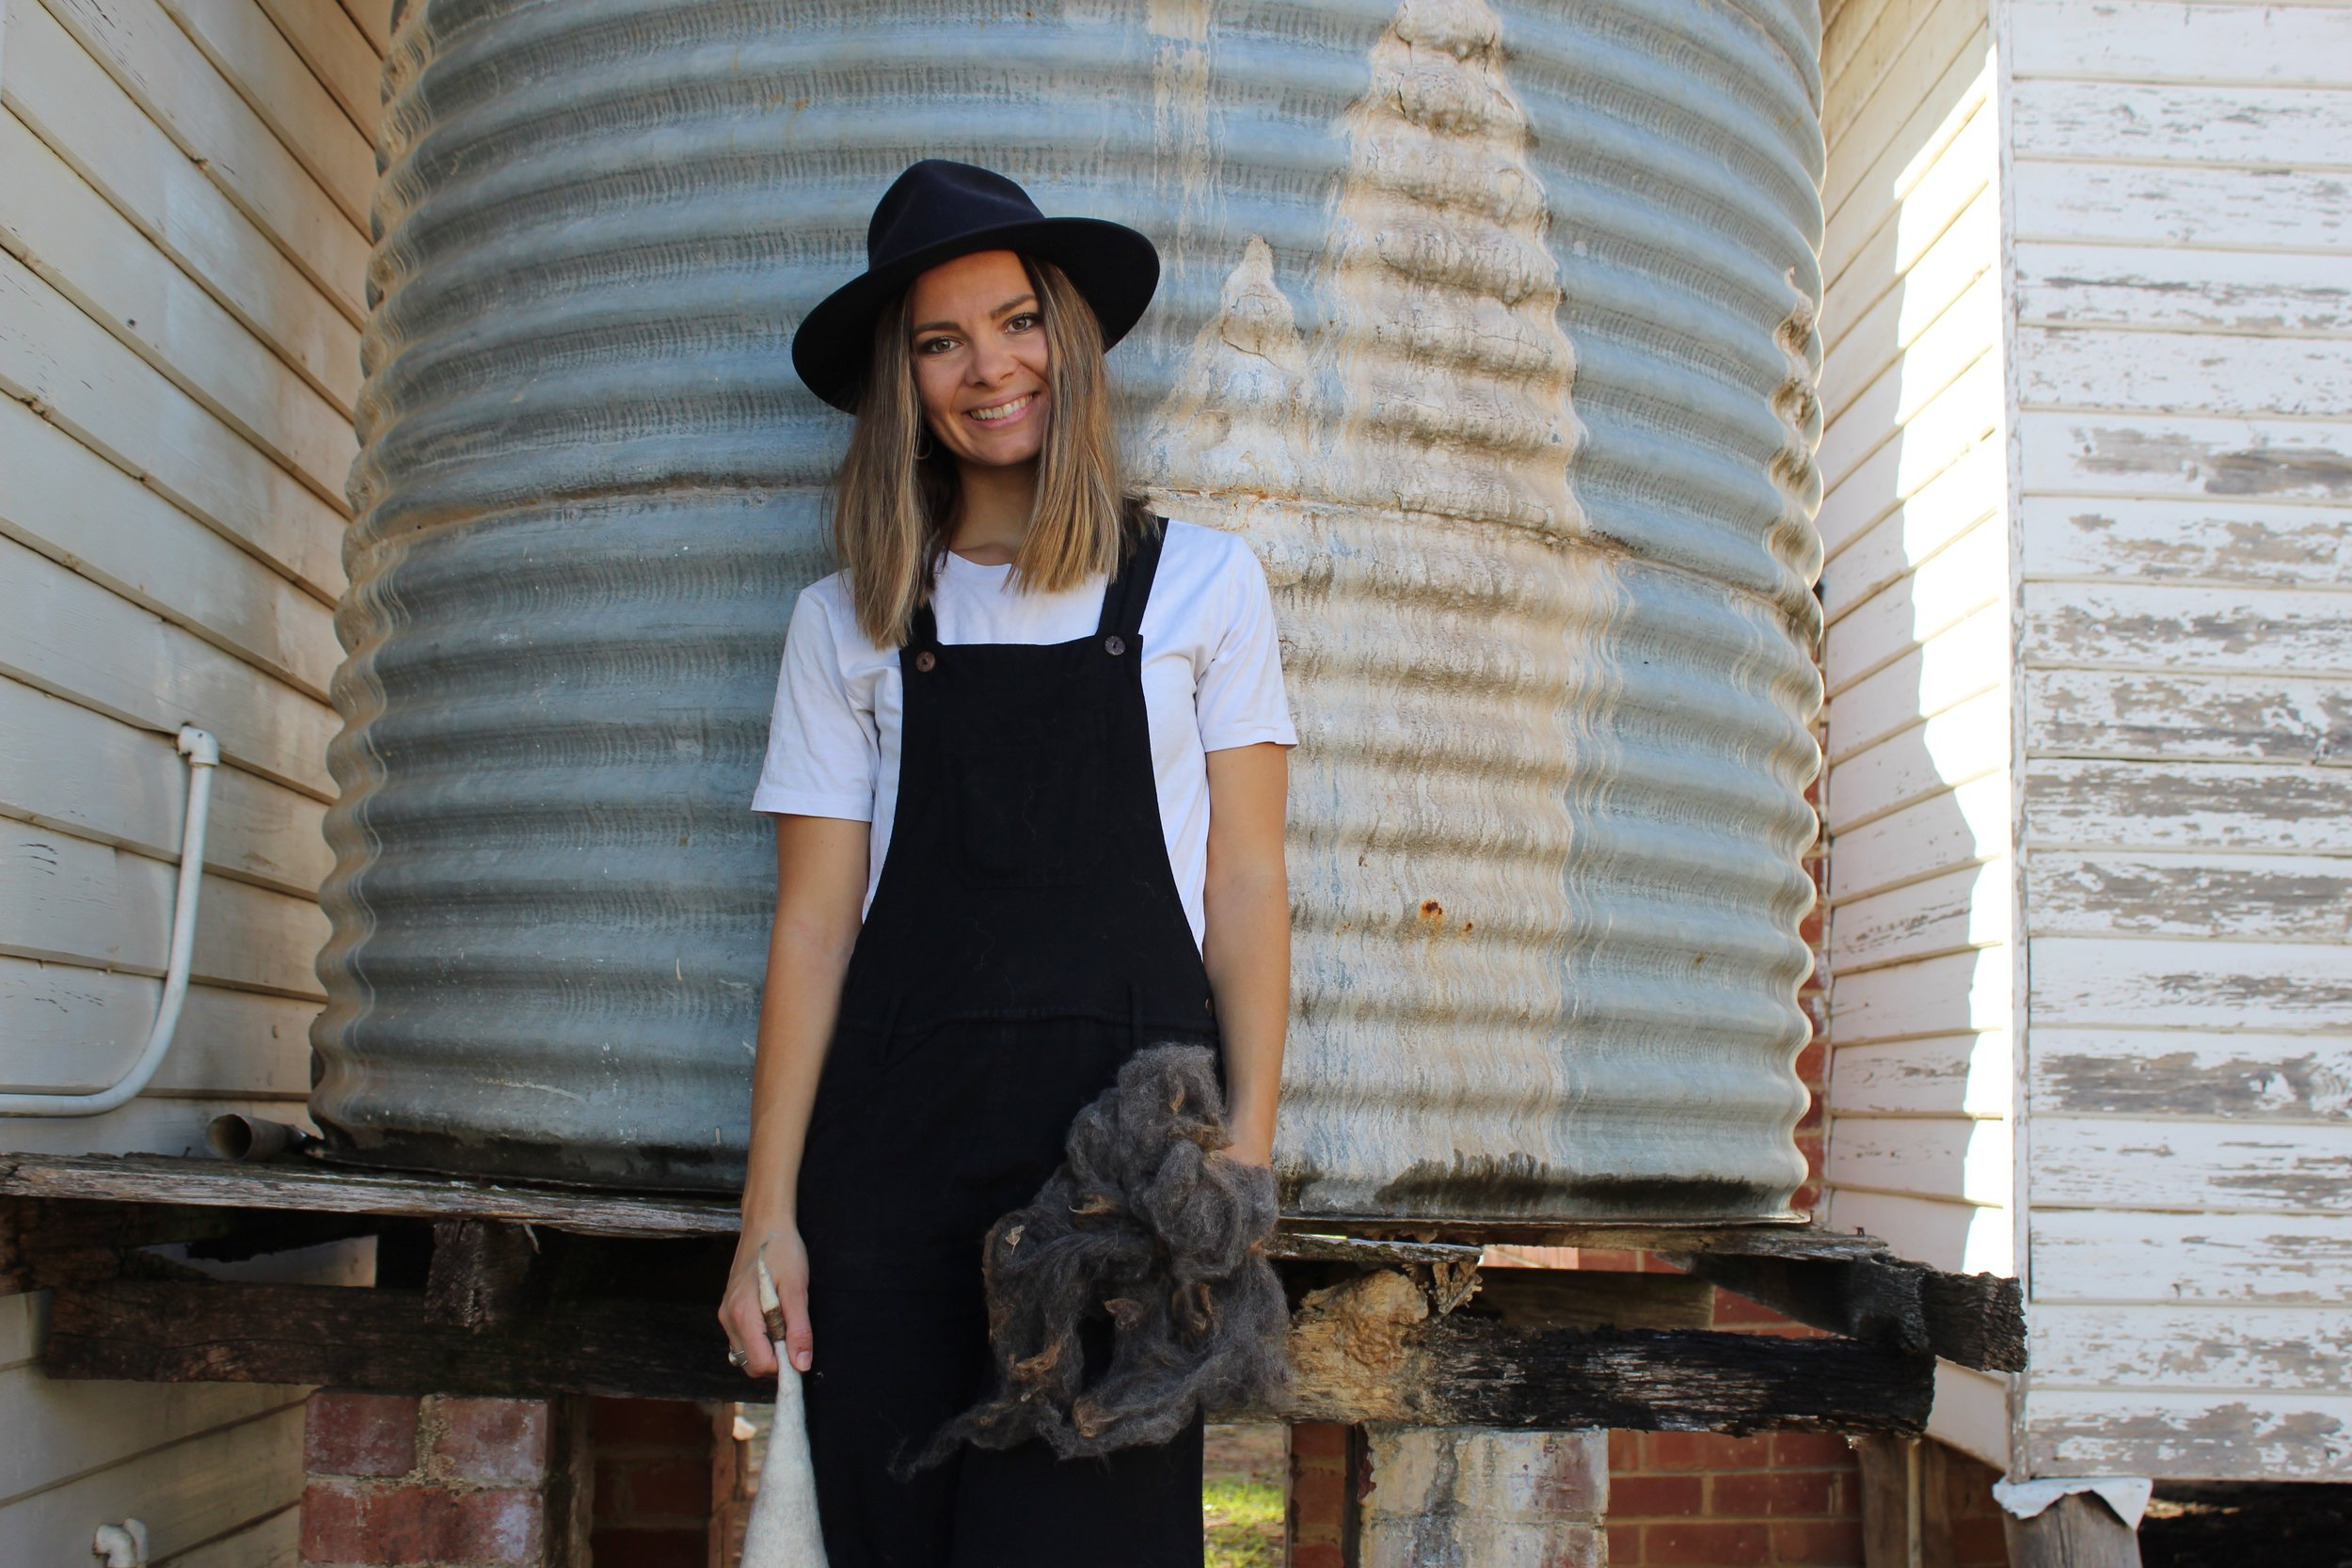 Jess with freshly shorn wool at her studio in Bungendore, rural NSW Australia.